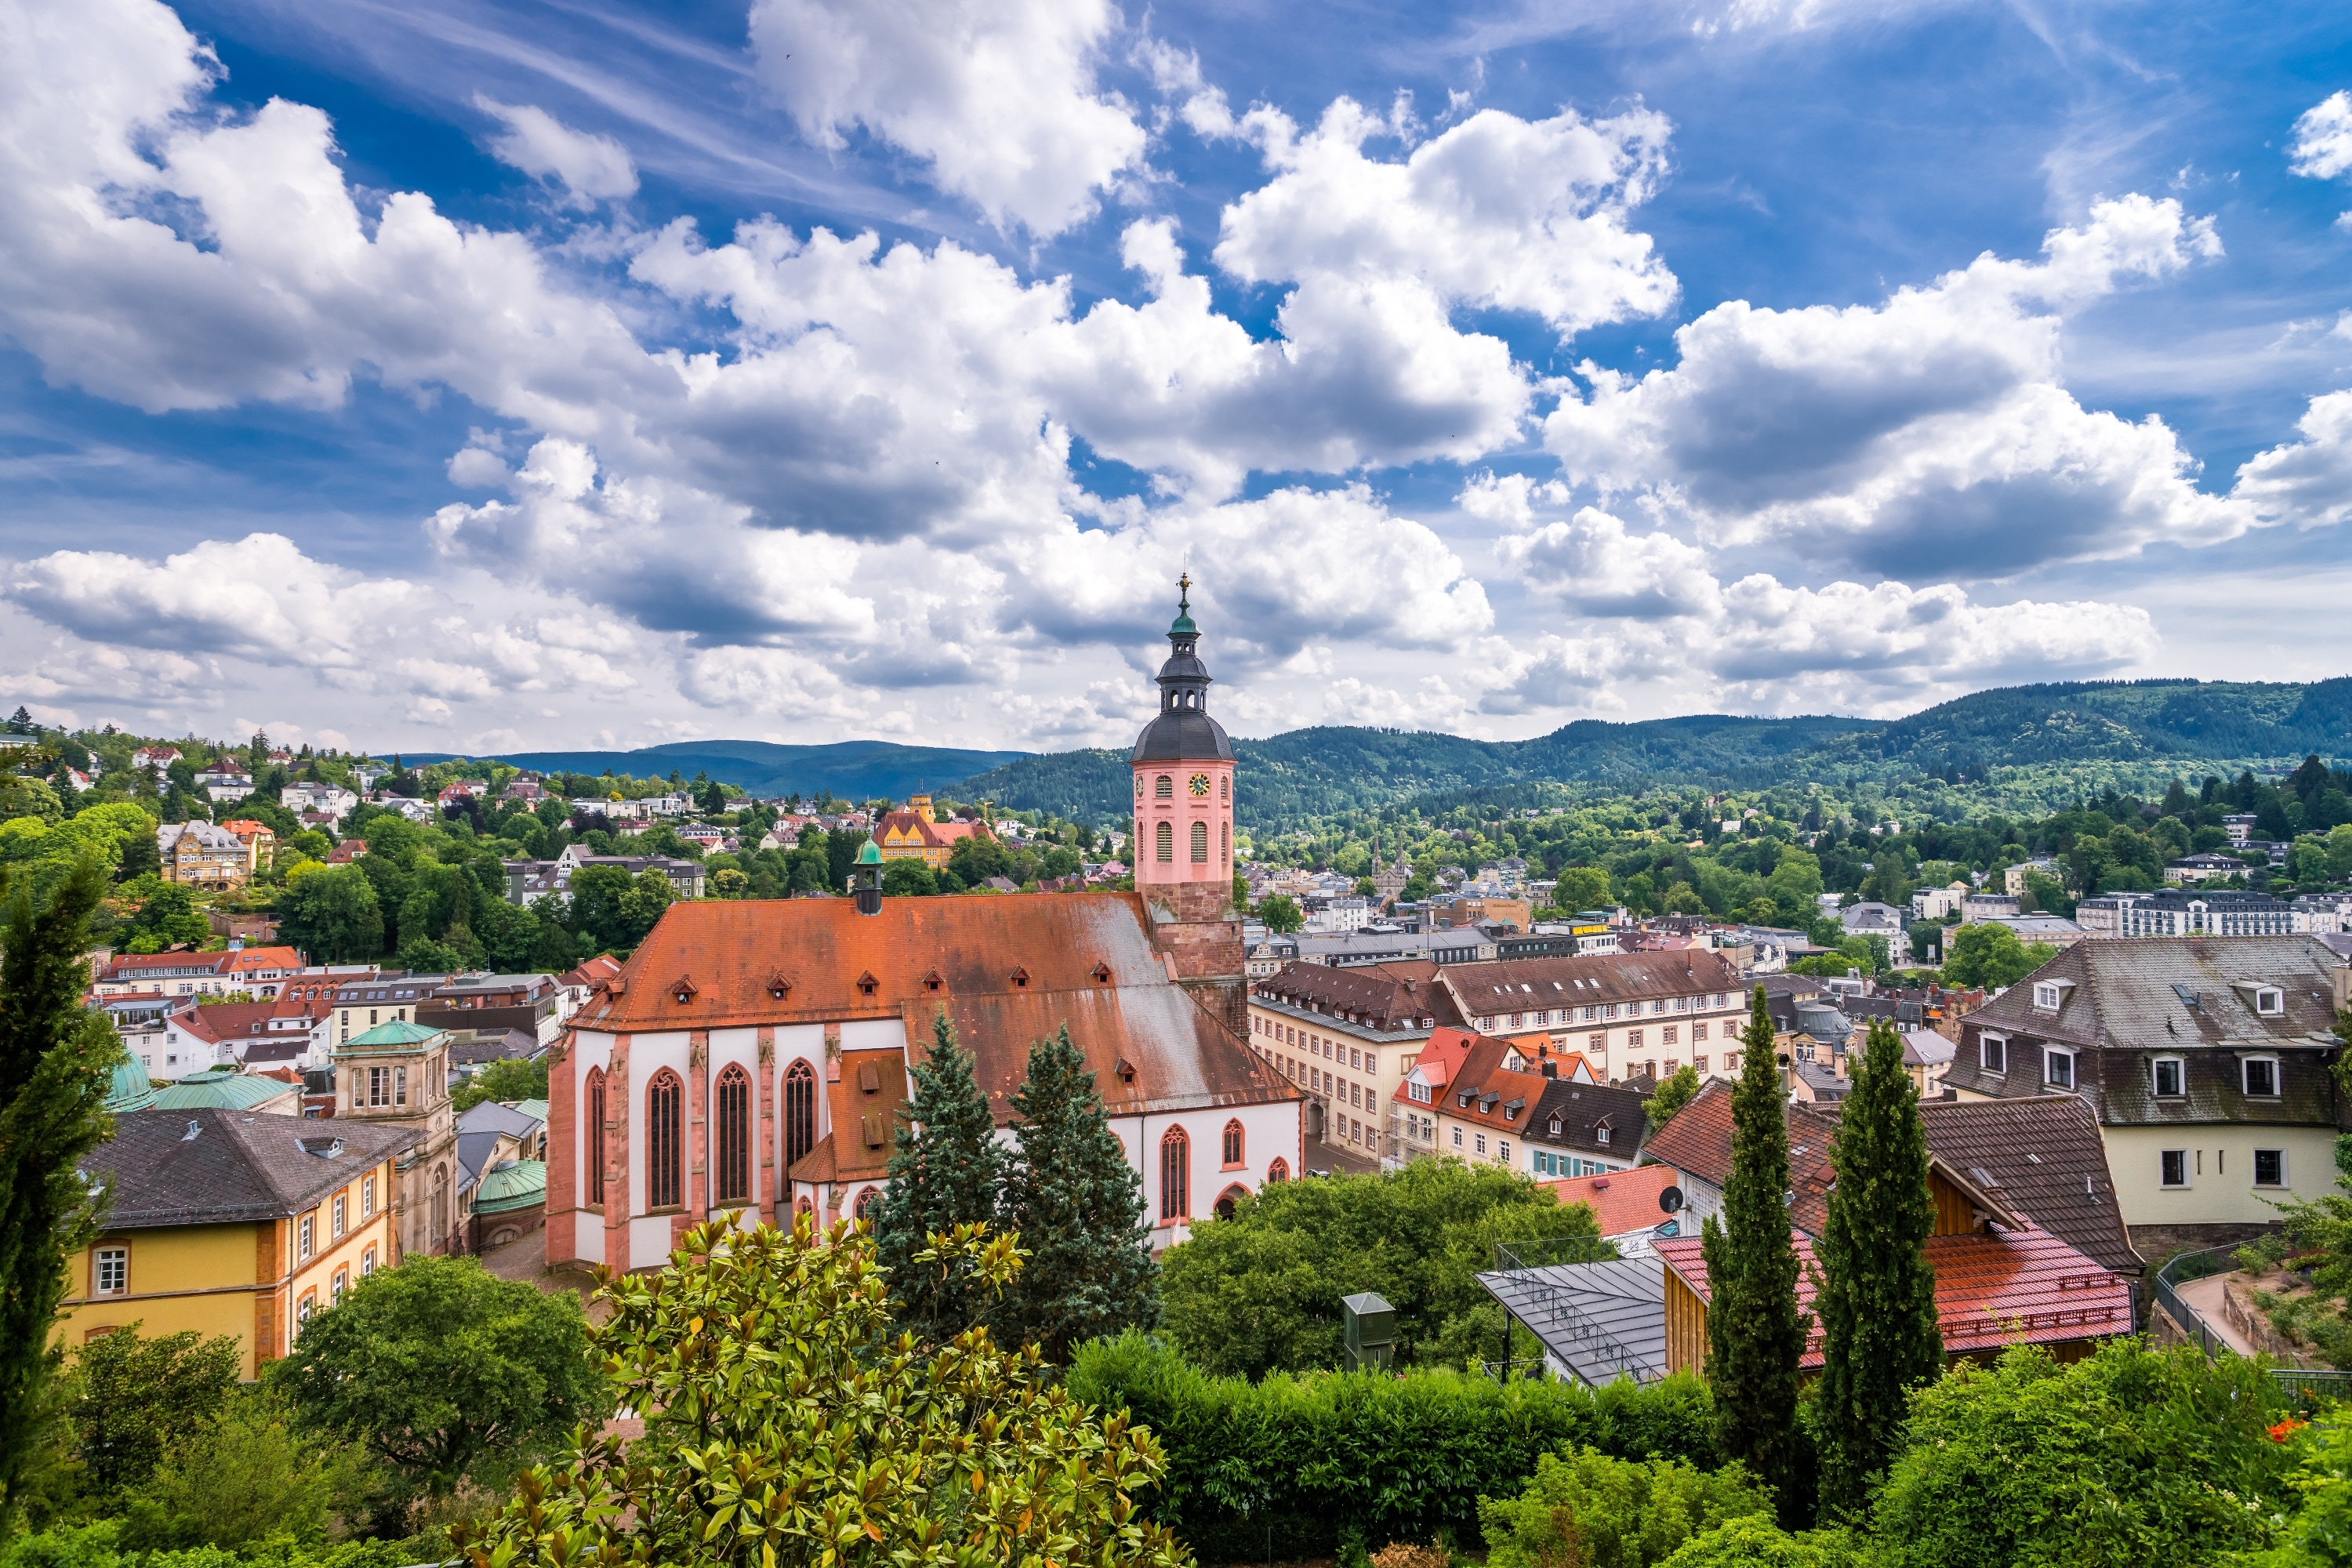 Full-day trip to Baden-Baden and the Black Forest from Frankfurt